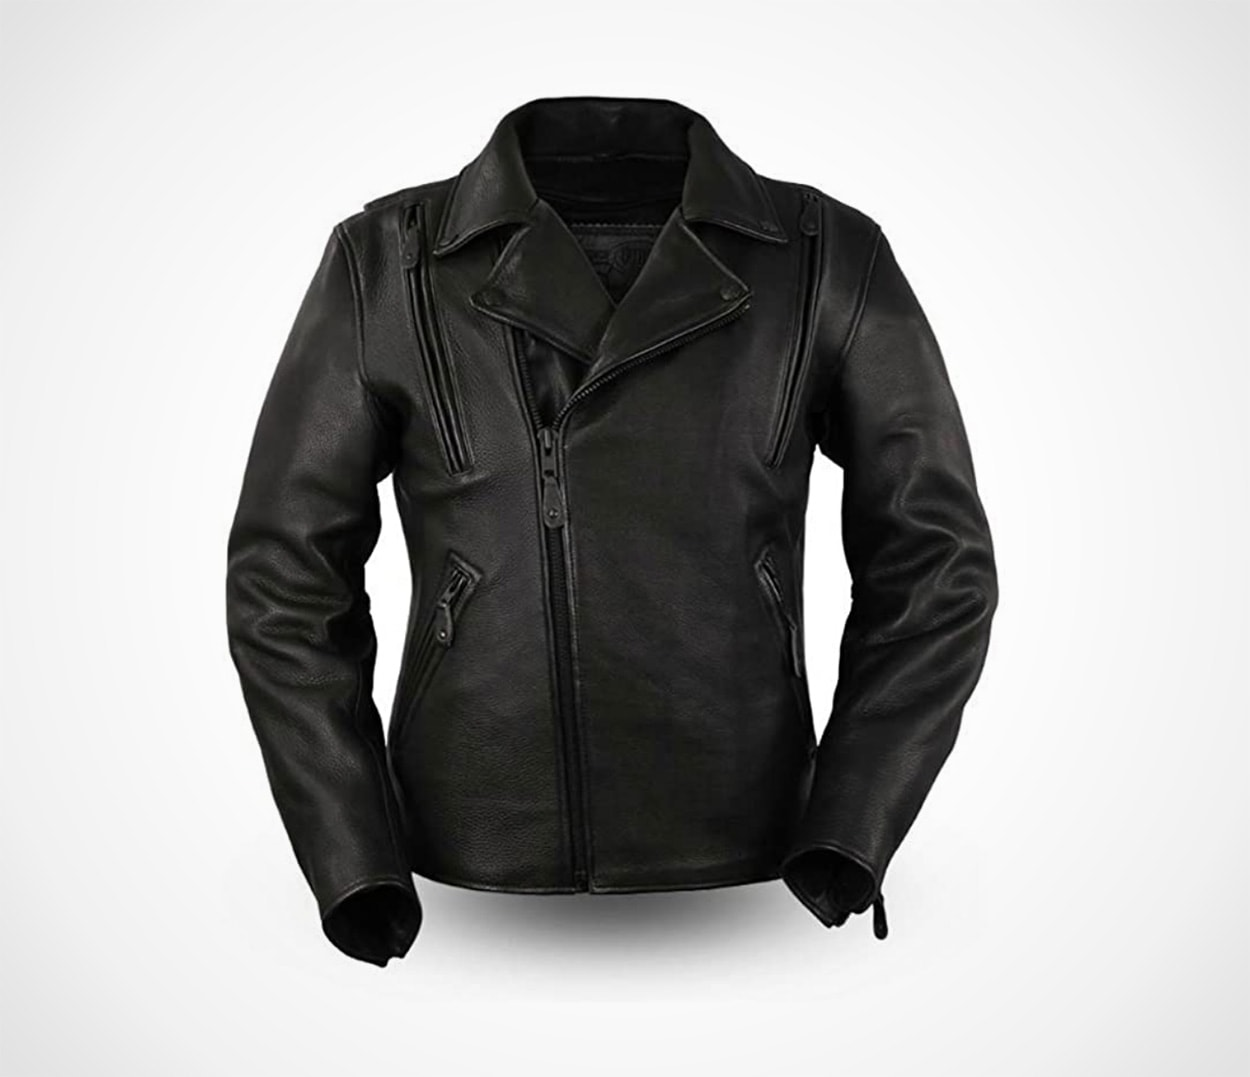 First MFG Co. - Night Rider - Men's Motorcycle Black Leather Jacket